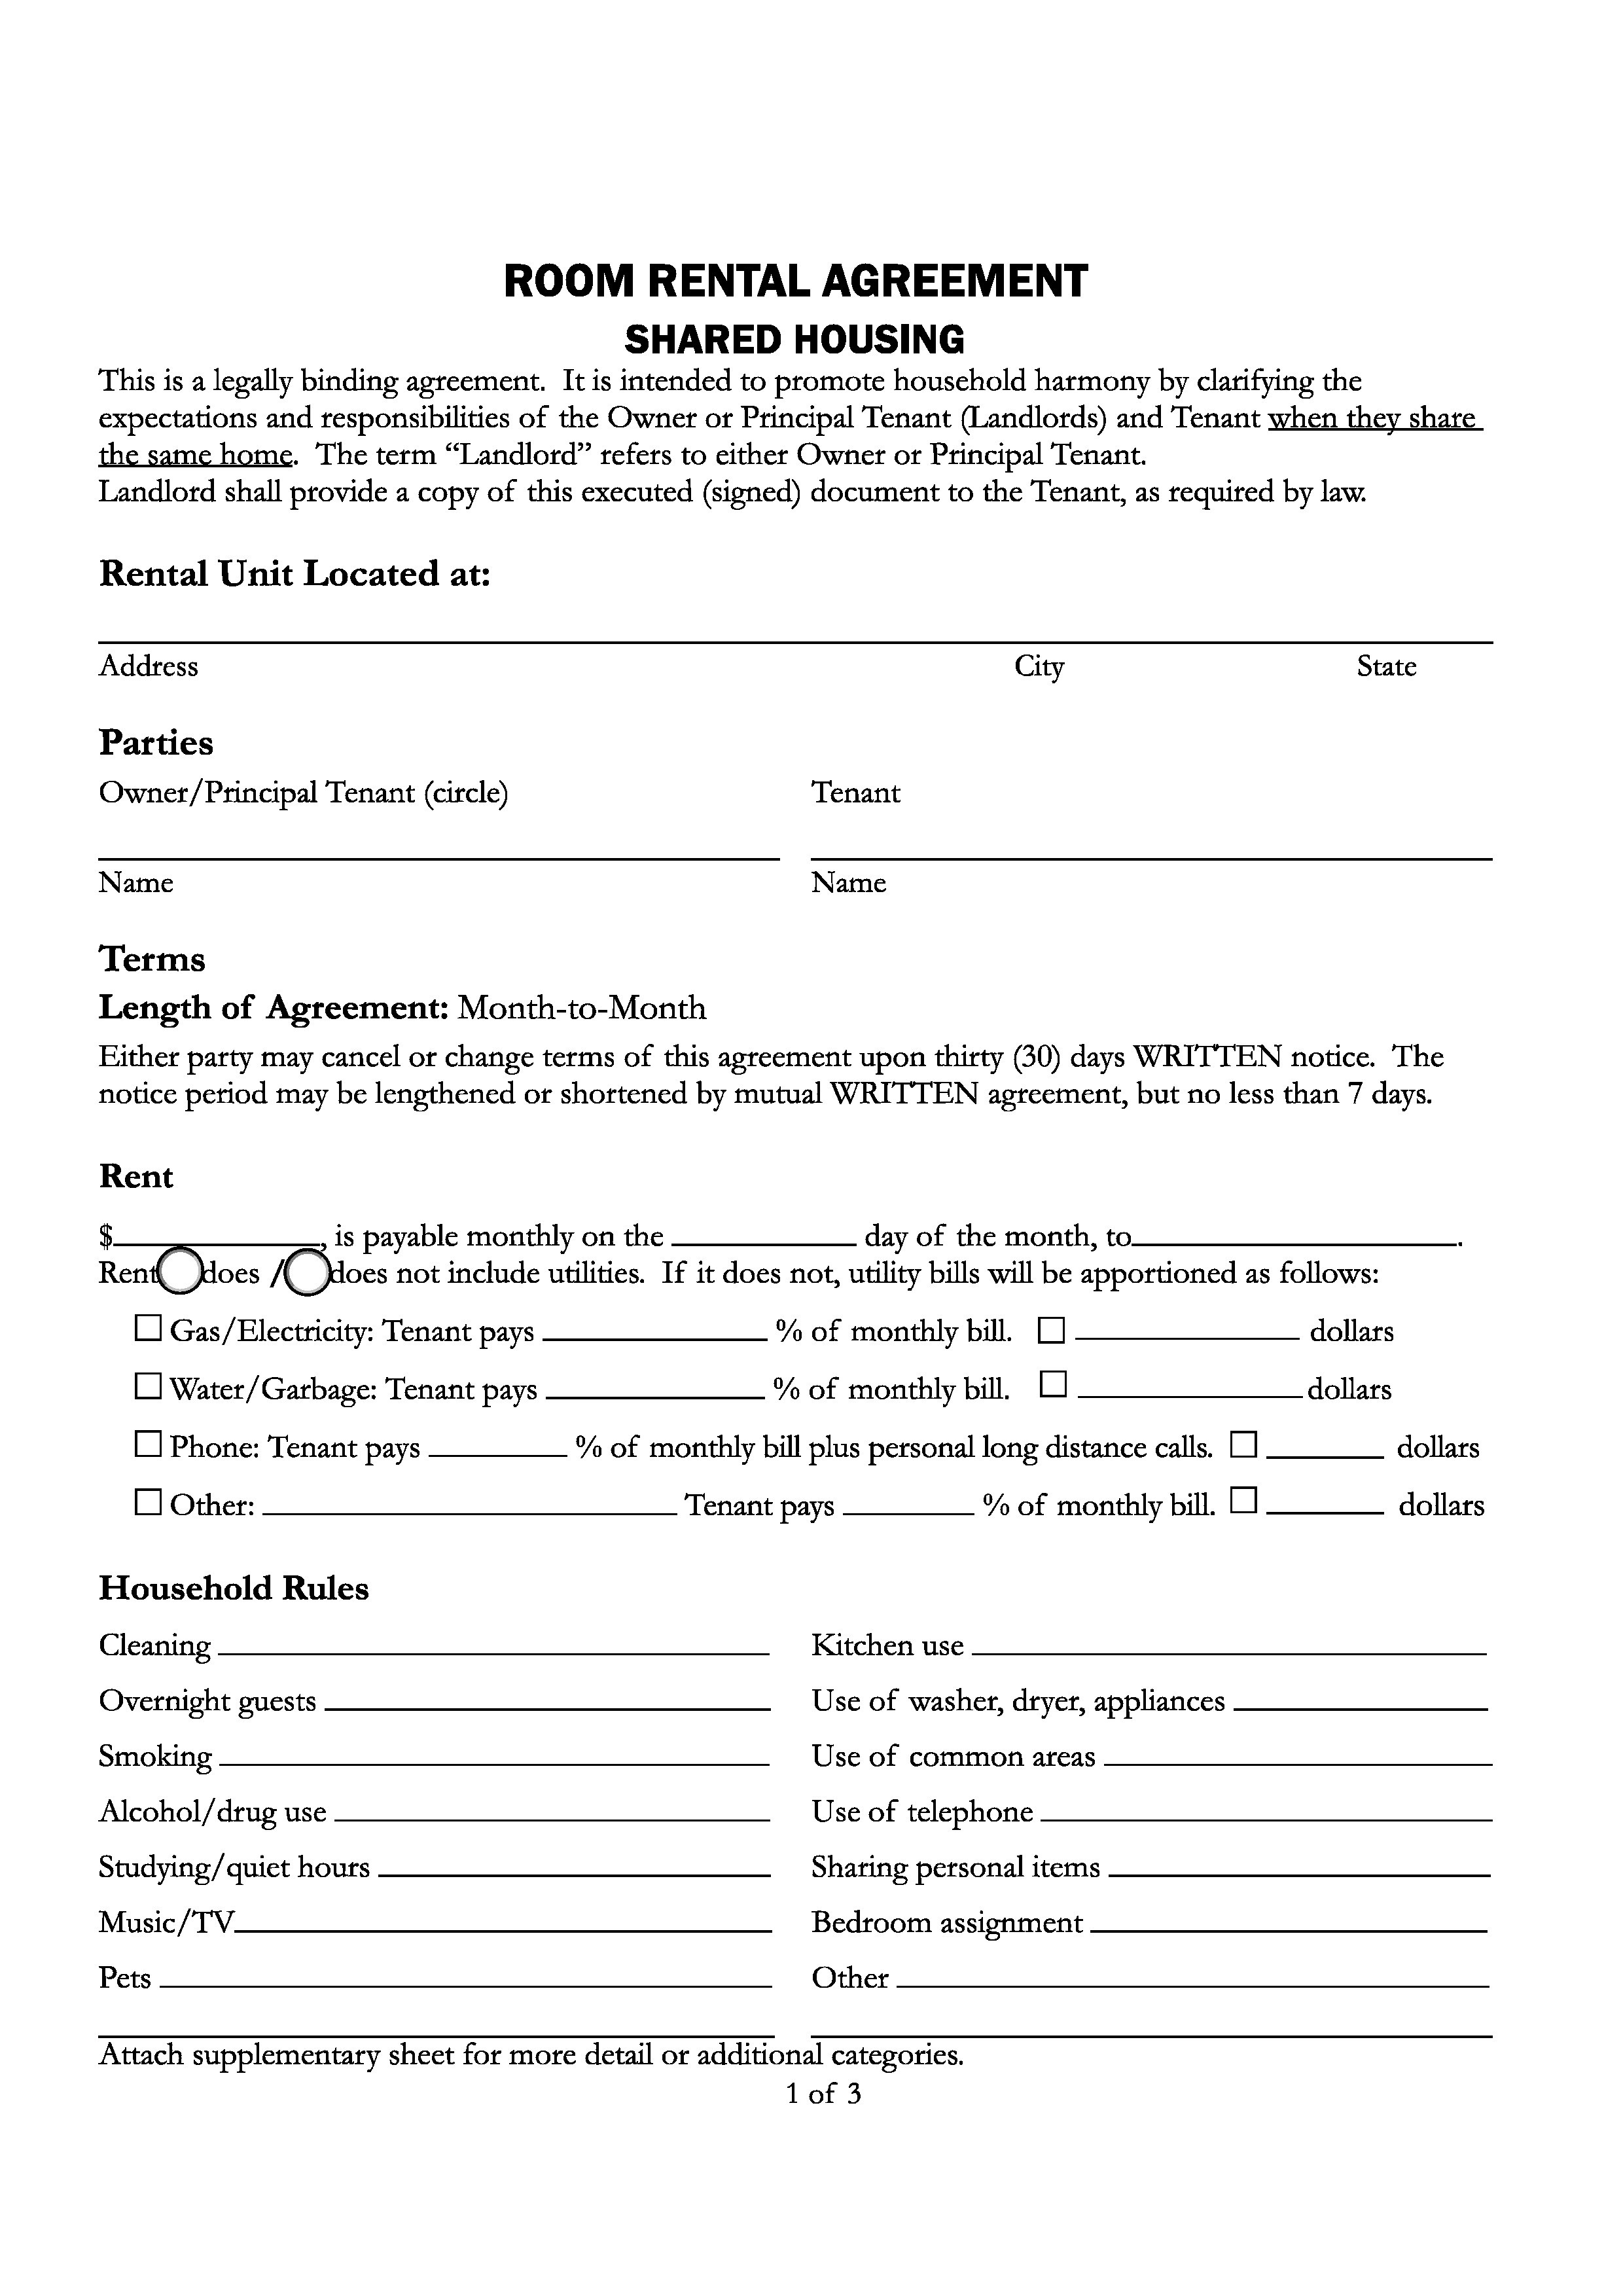 Lease Agreement Form California Pdf Free Santa Cruz County California Room Rental Agreement Pdf Word Do It Yourself Forms